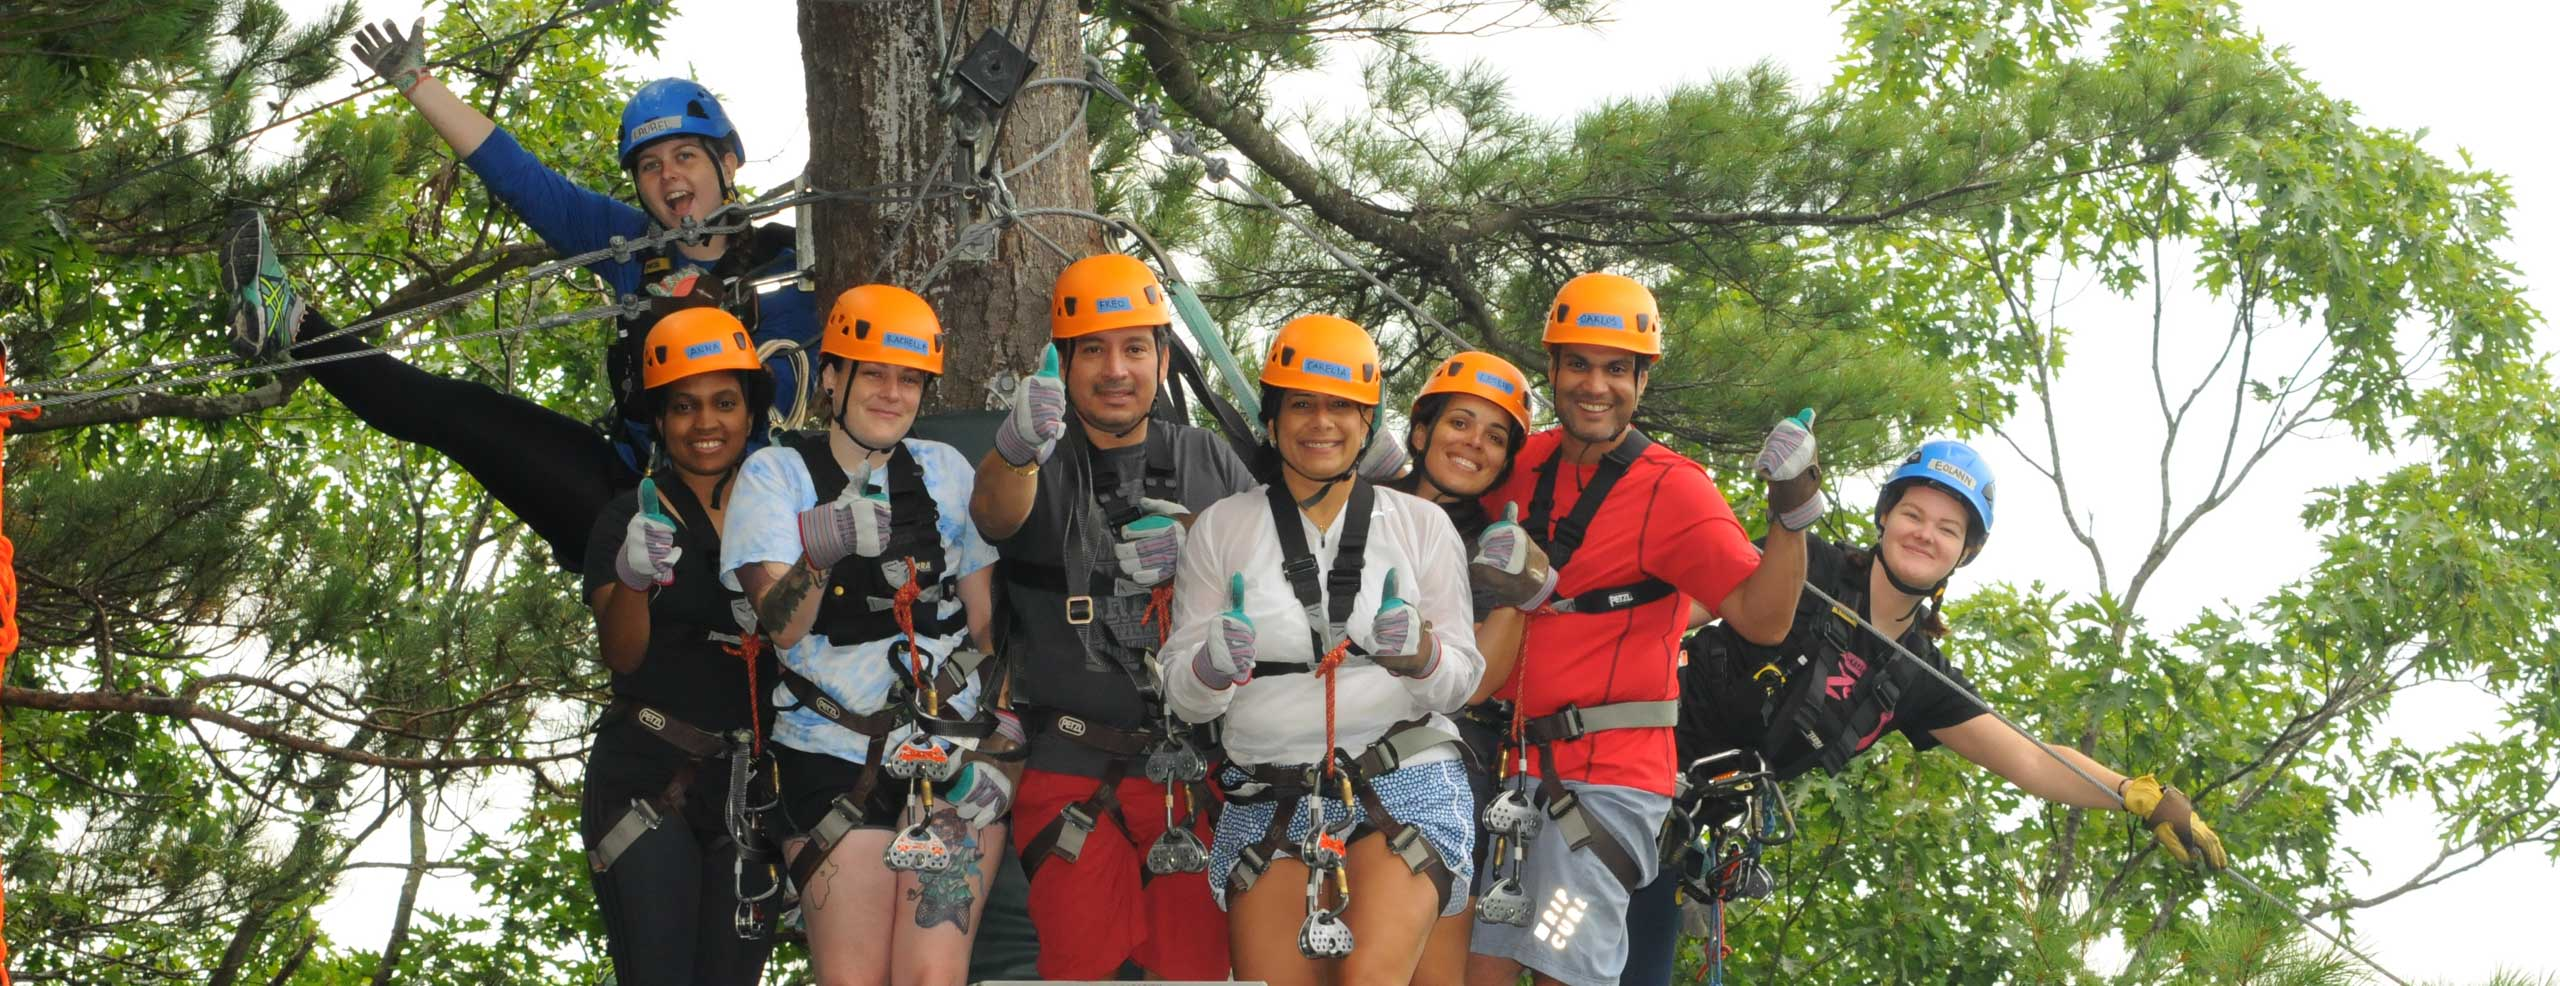 Zip group taking a group photo on a platform in the trees